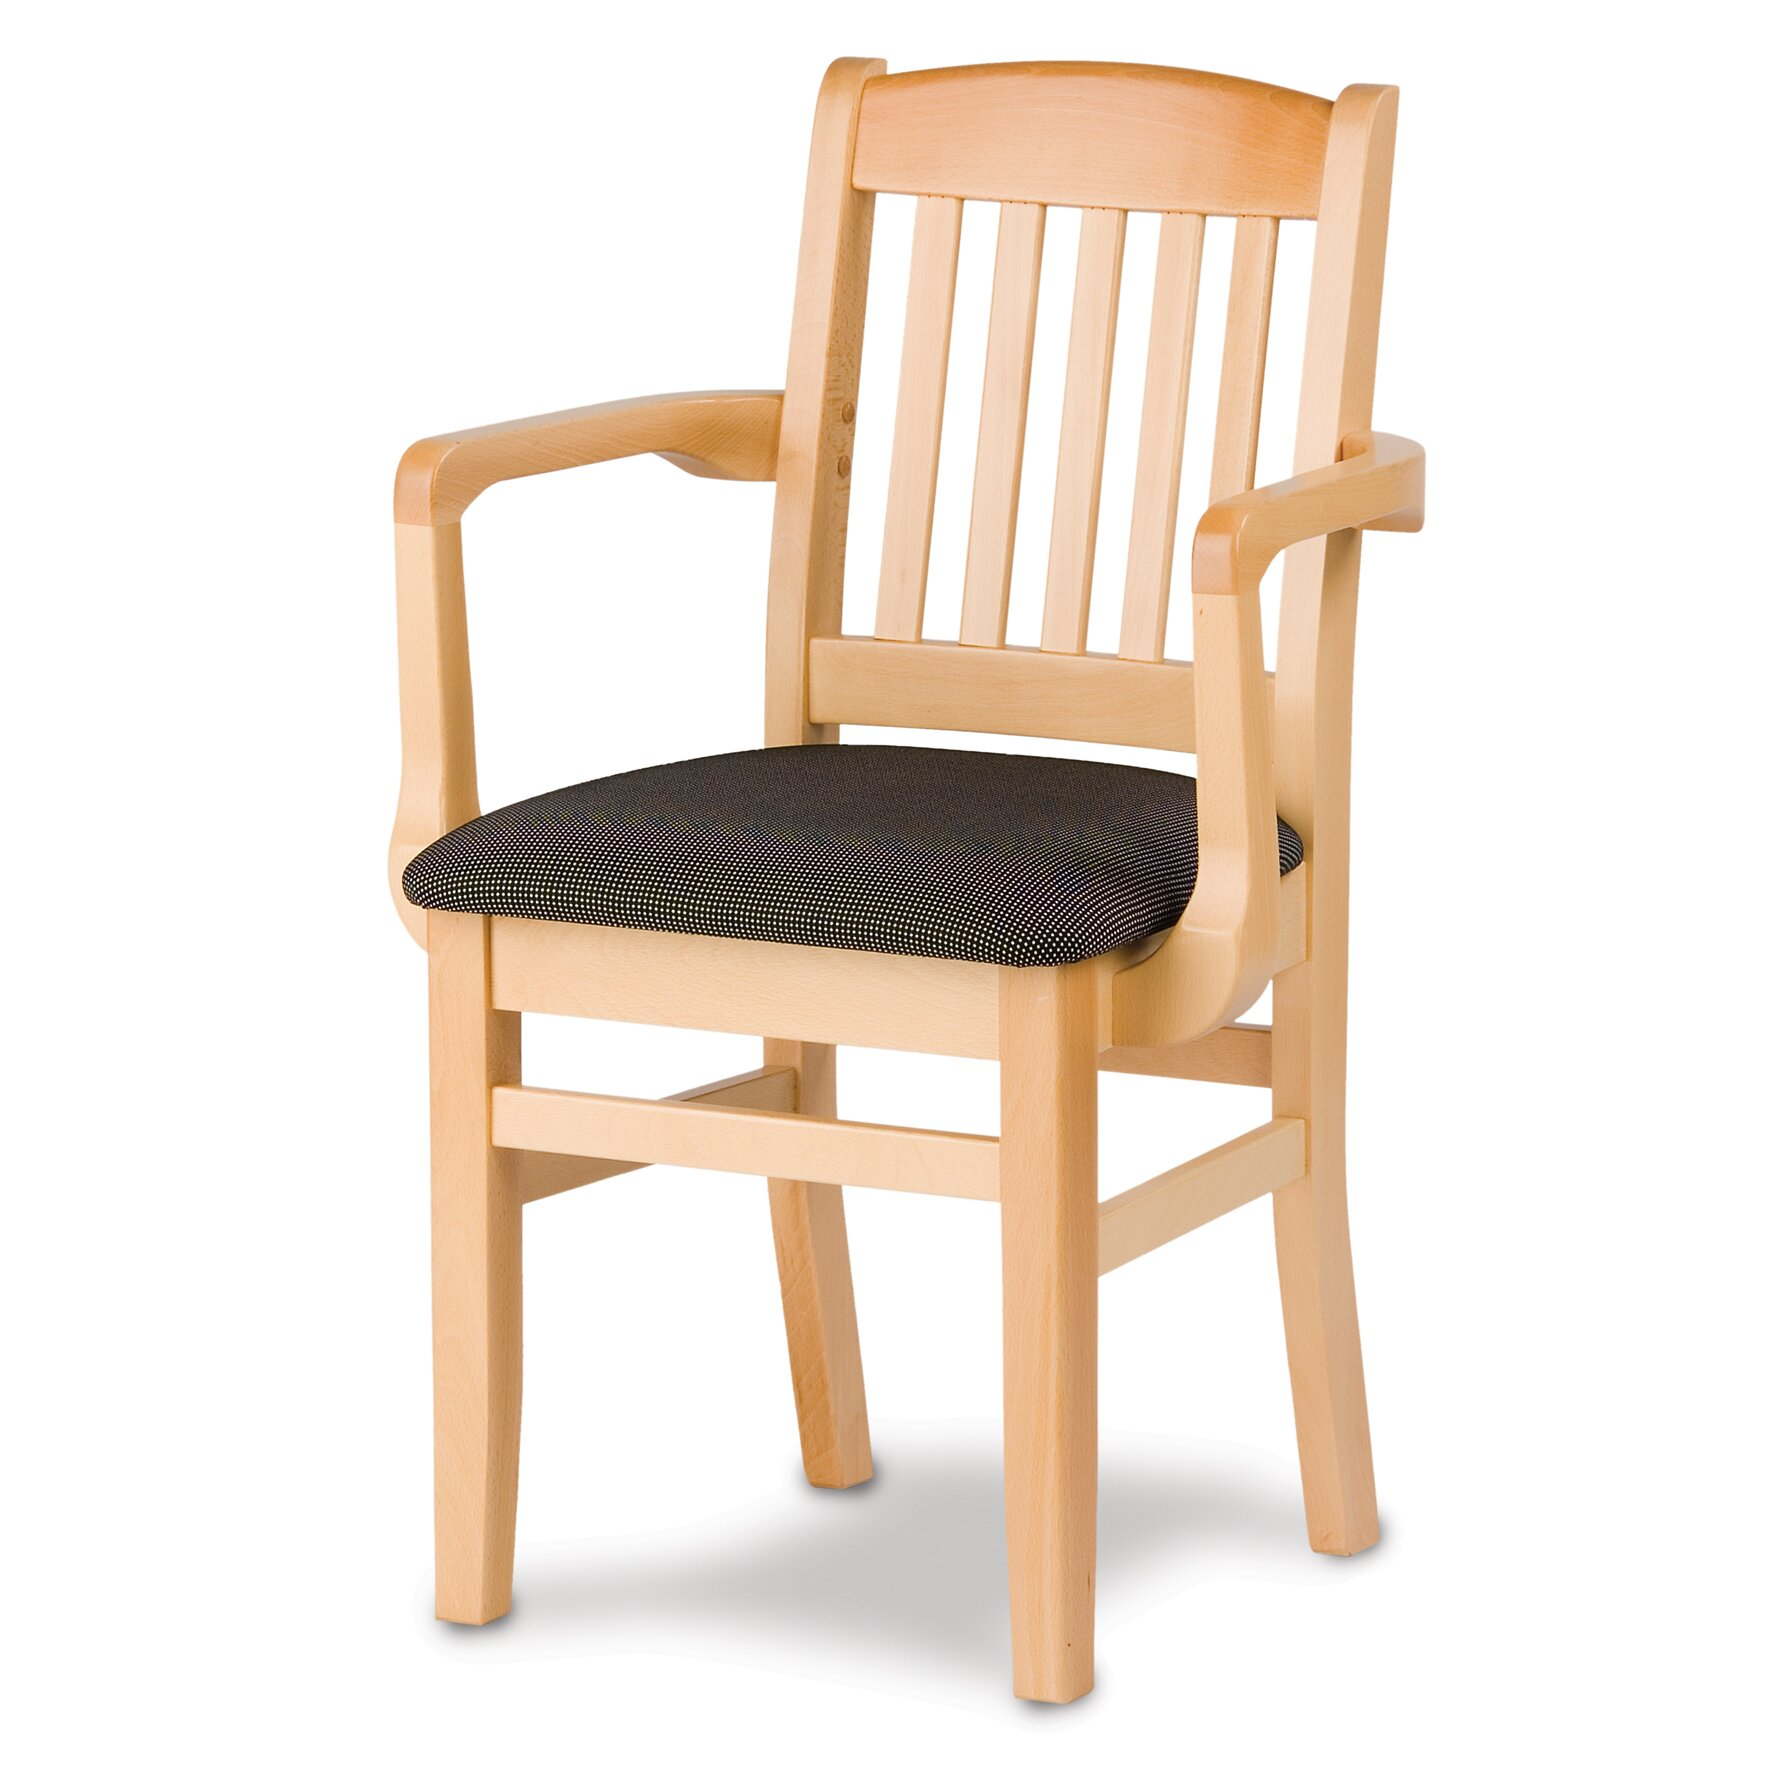 Kitchen Chairs With Arms: Holsag Bulldog Arm Chair With Cushion